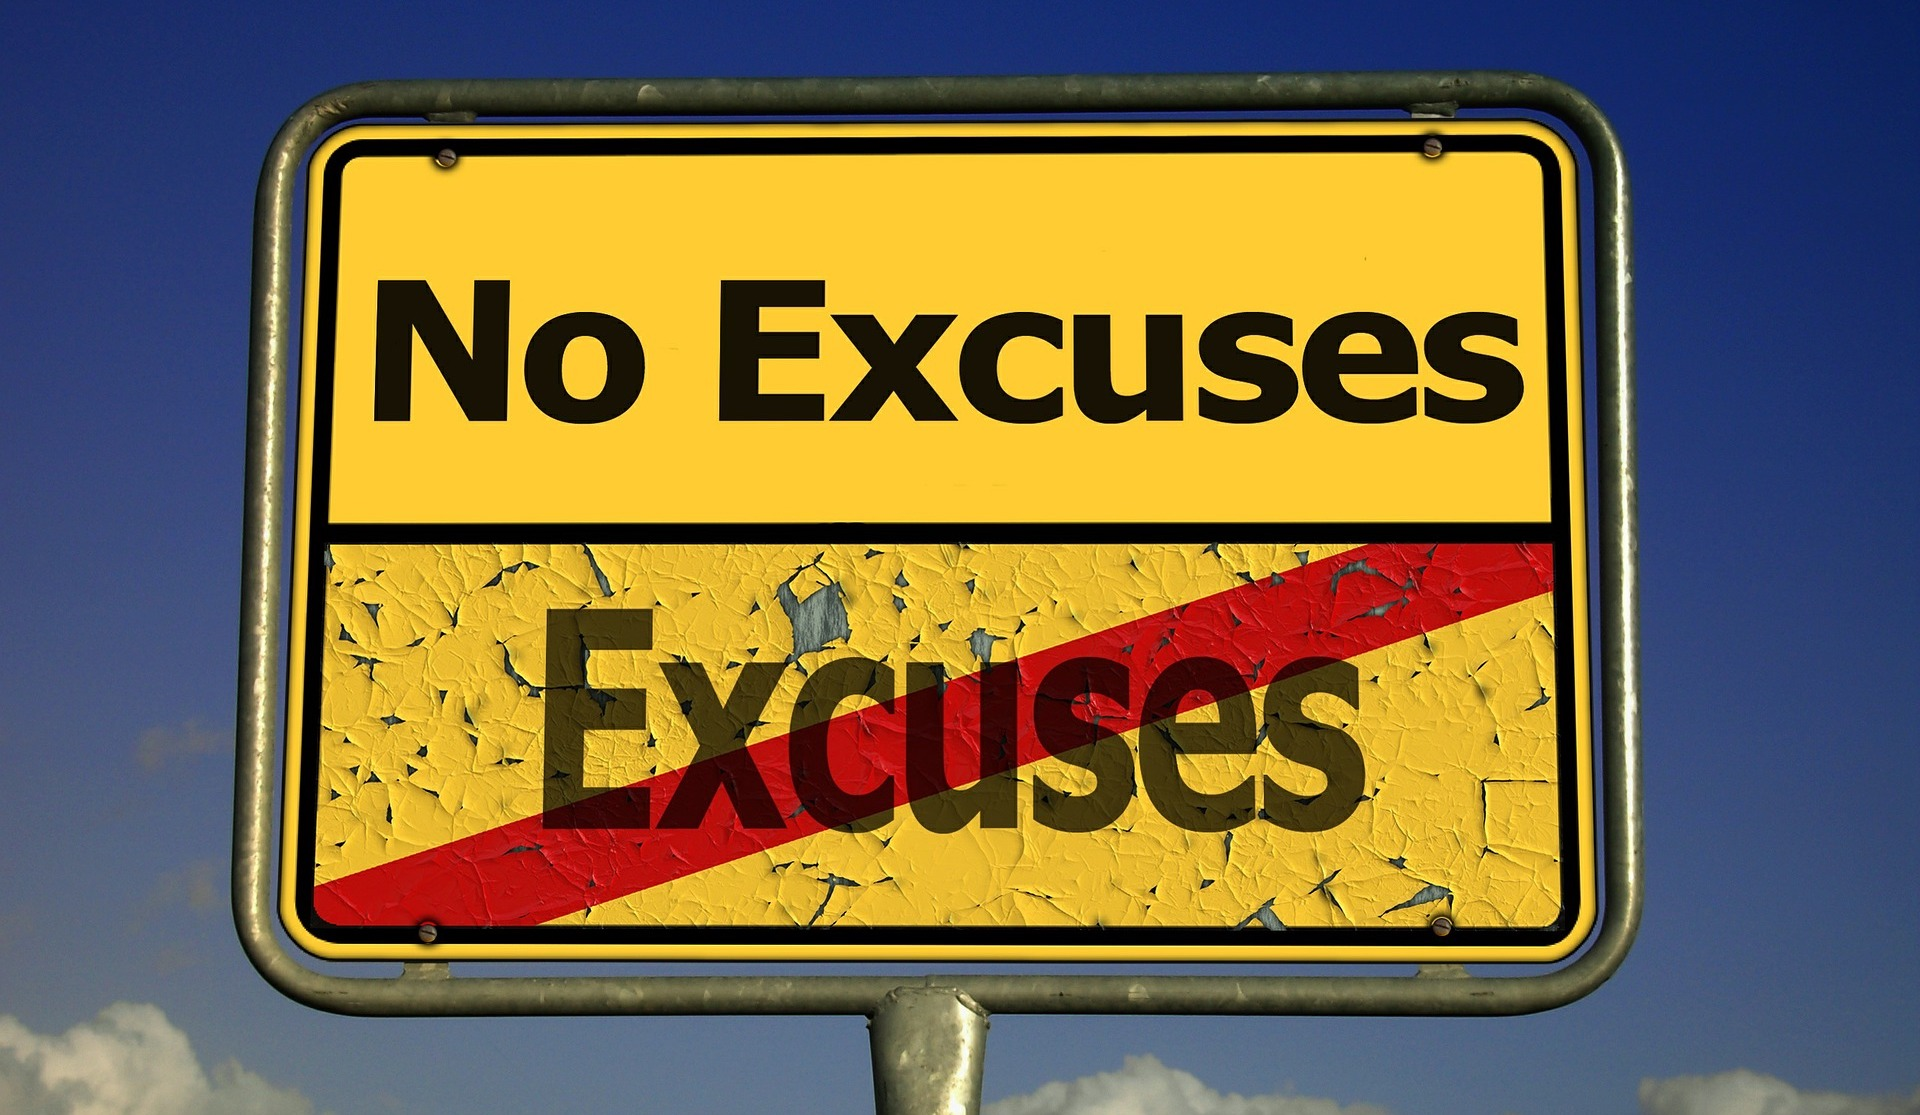 Excuses or Solutions